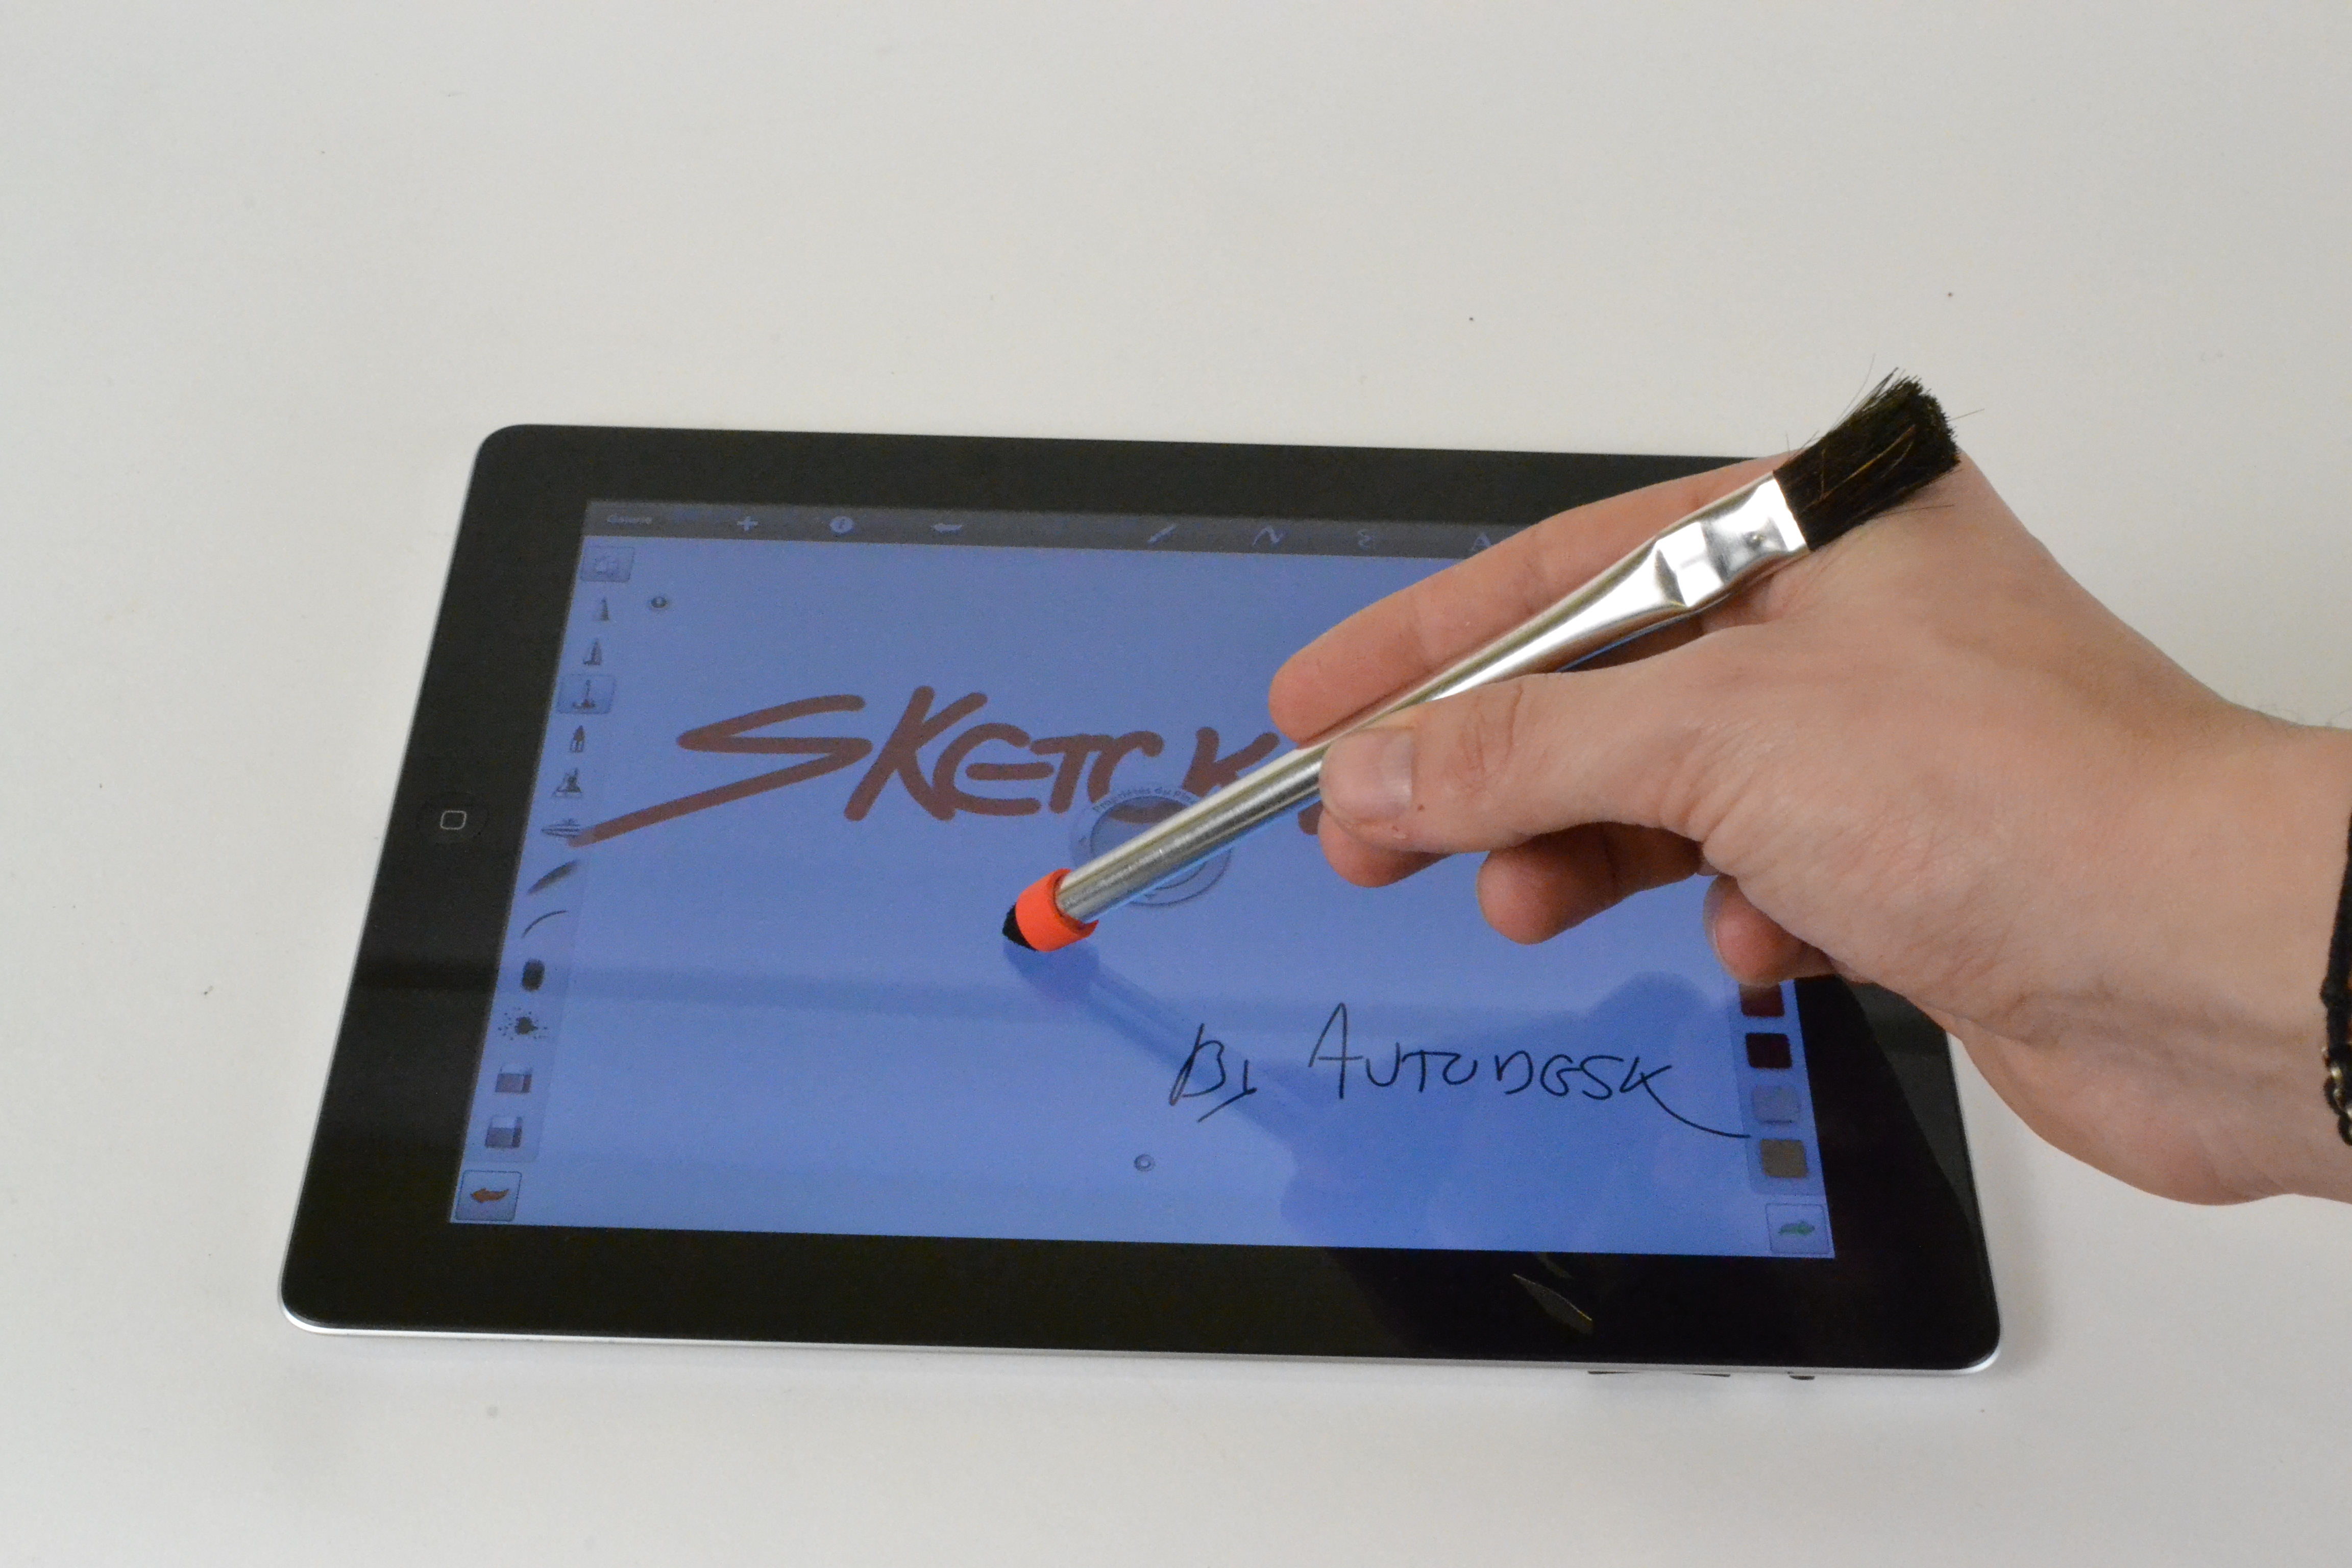 Paint brush stylus for Ipad. Used on Sketchbook PRO!